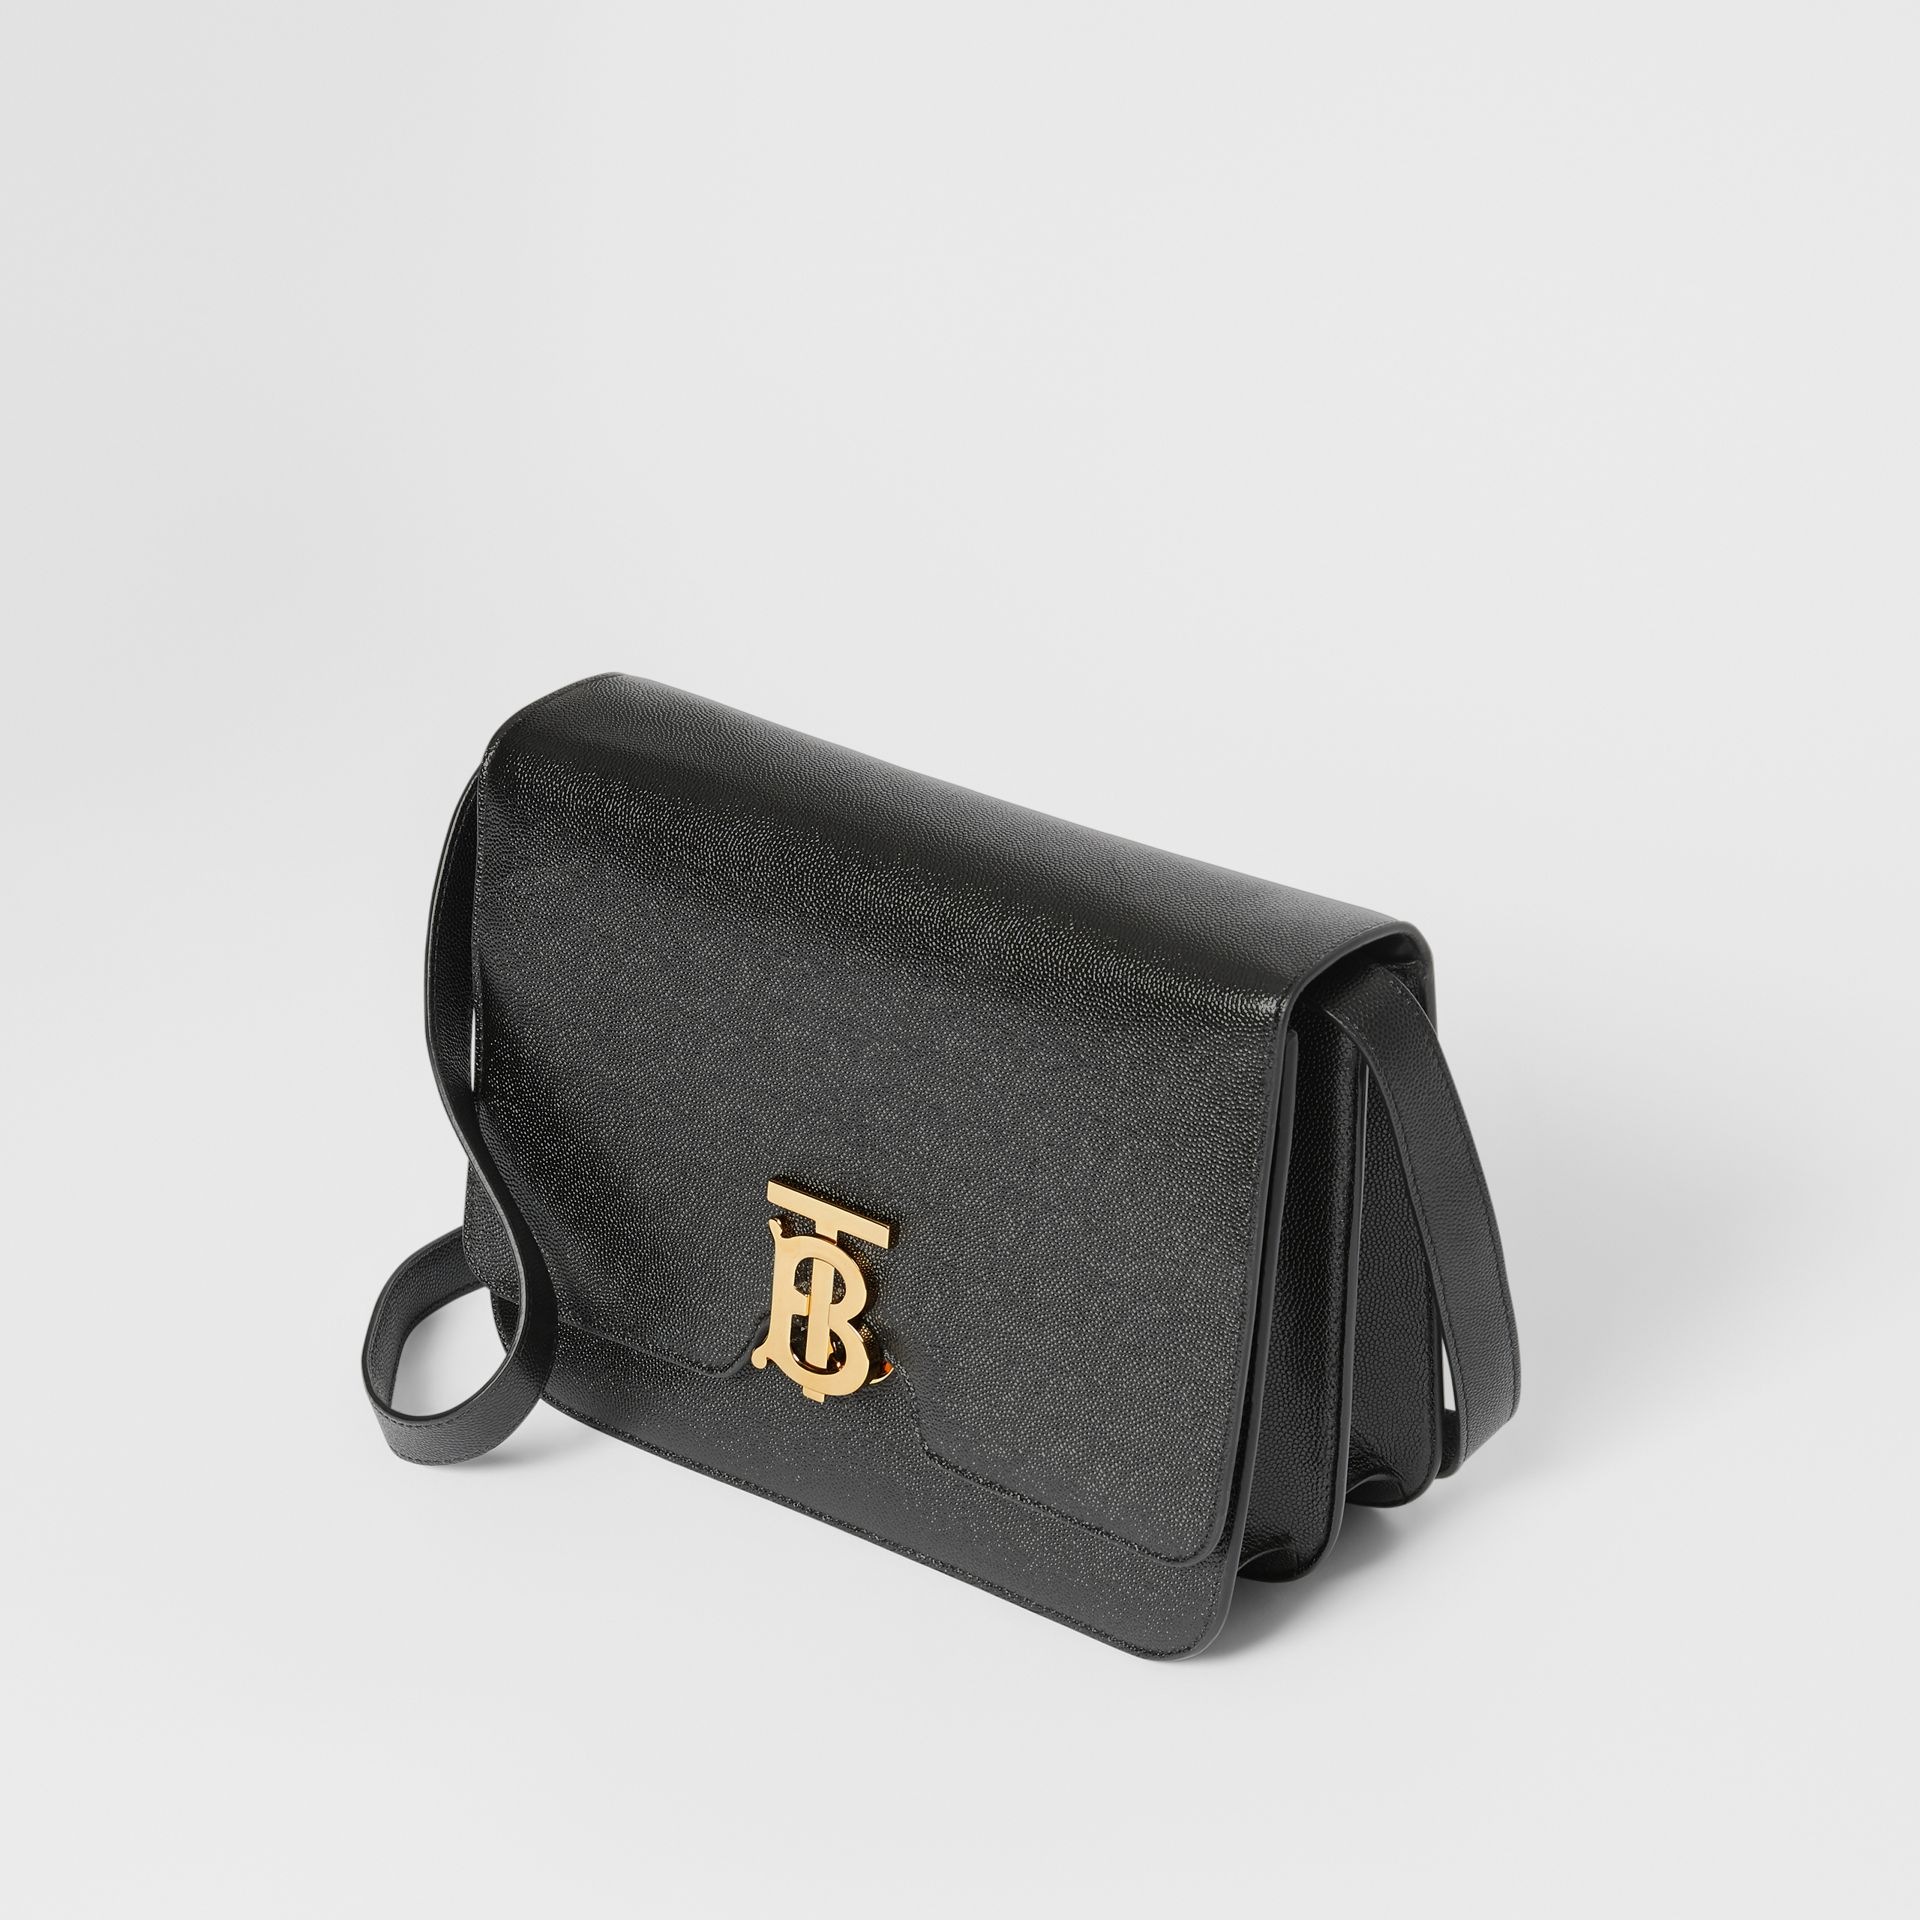 Medium Grainy Leather TB Bag in Black - Women | Burberry United States - gallery image 3